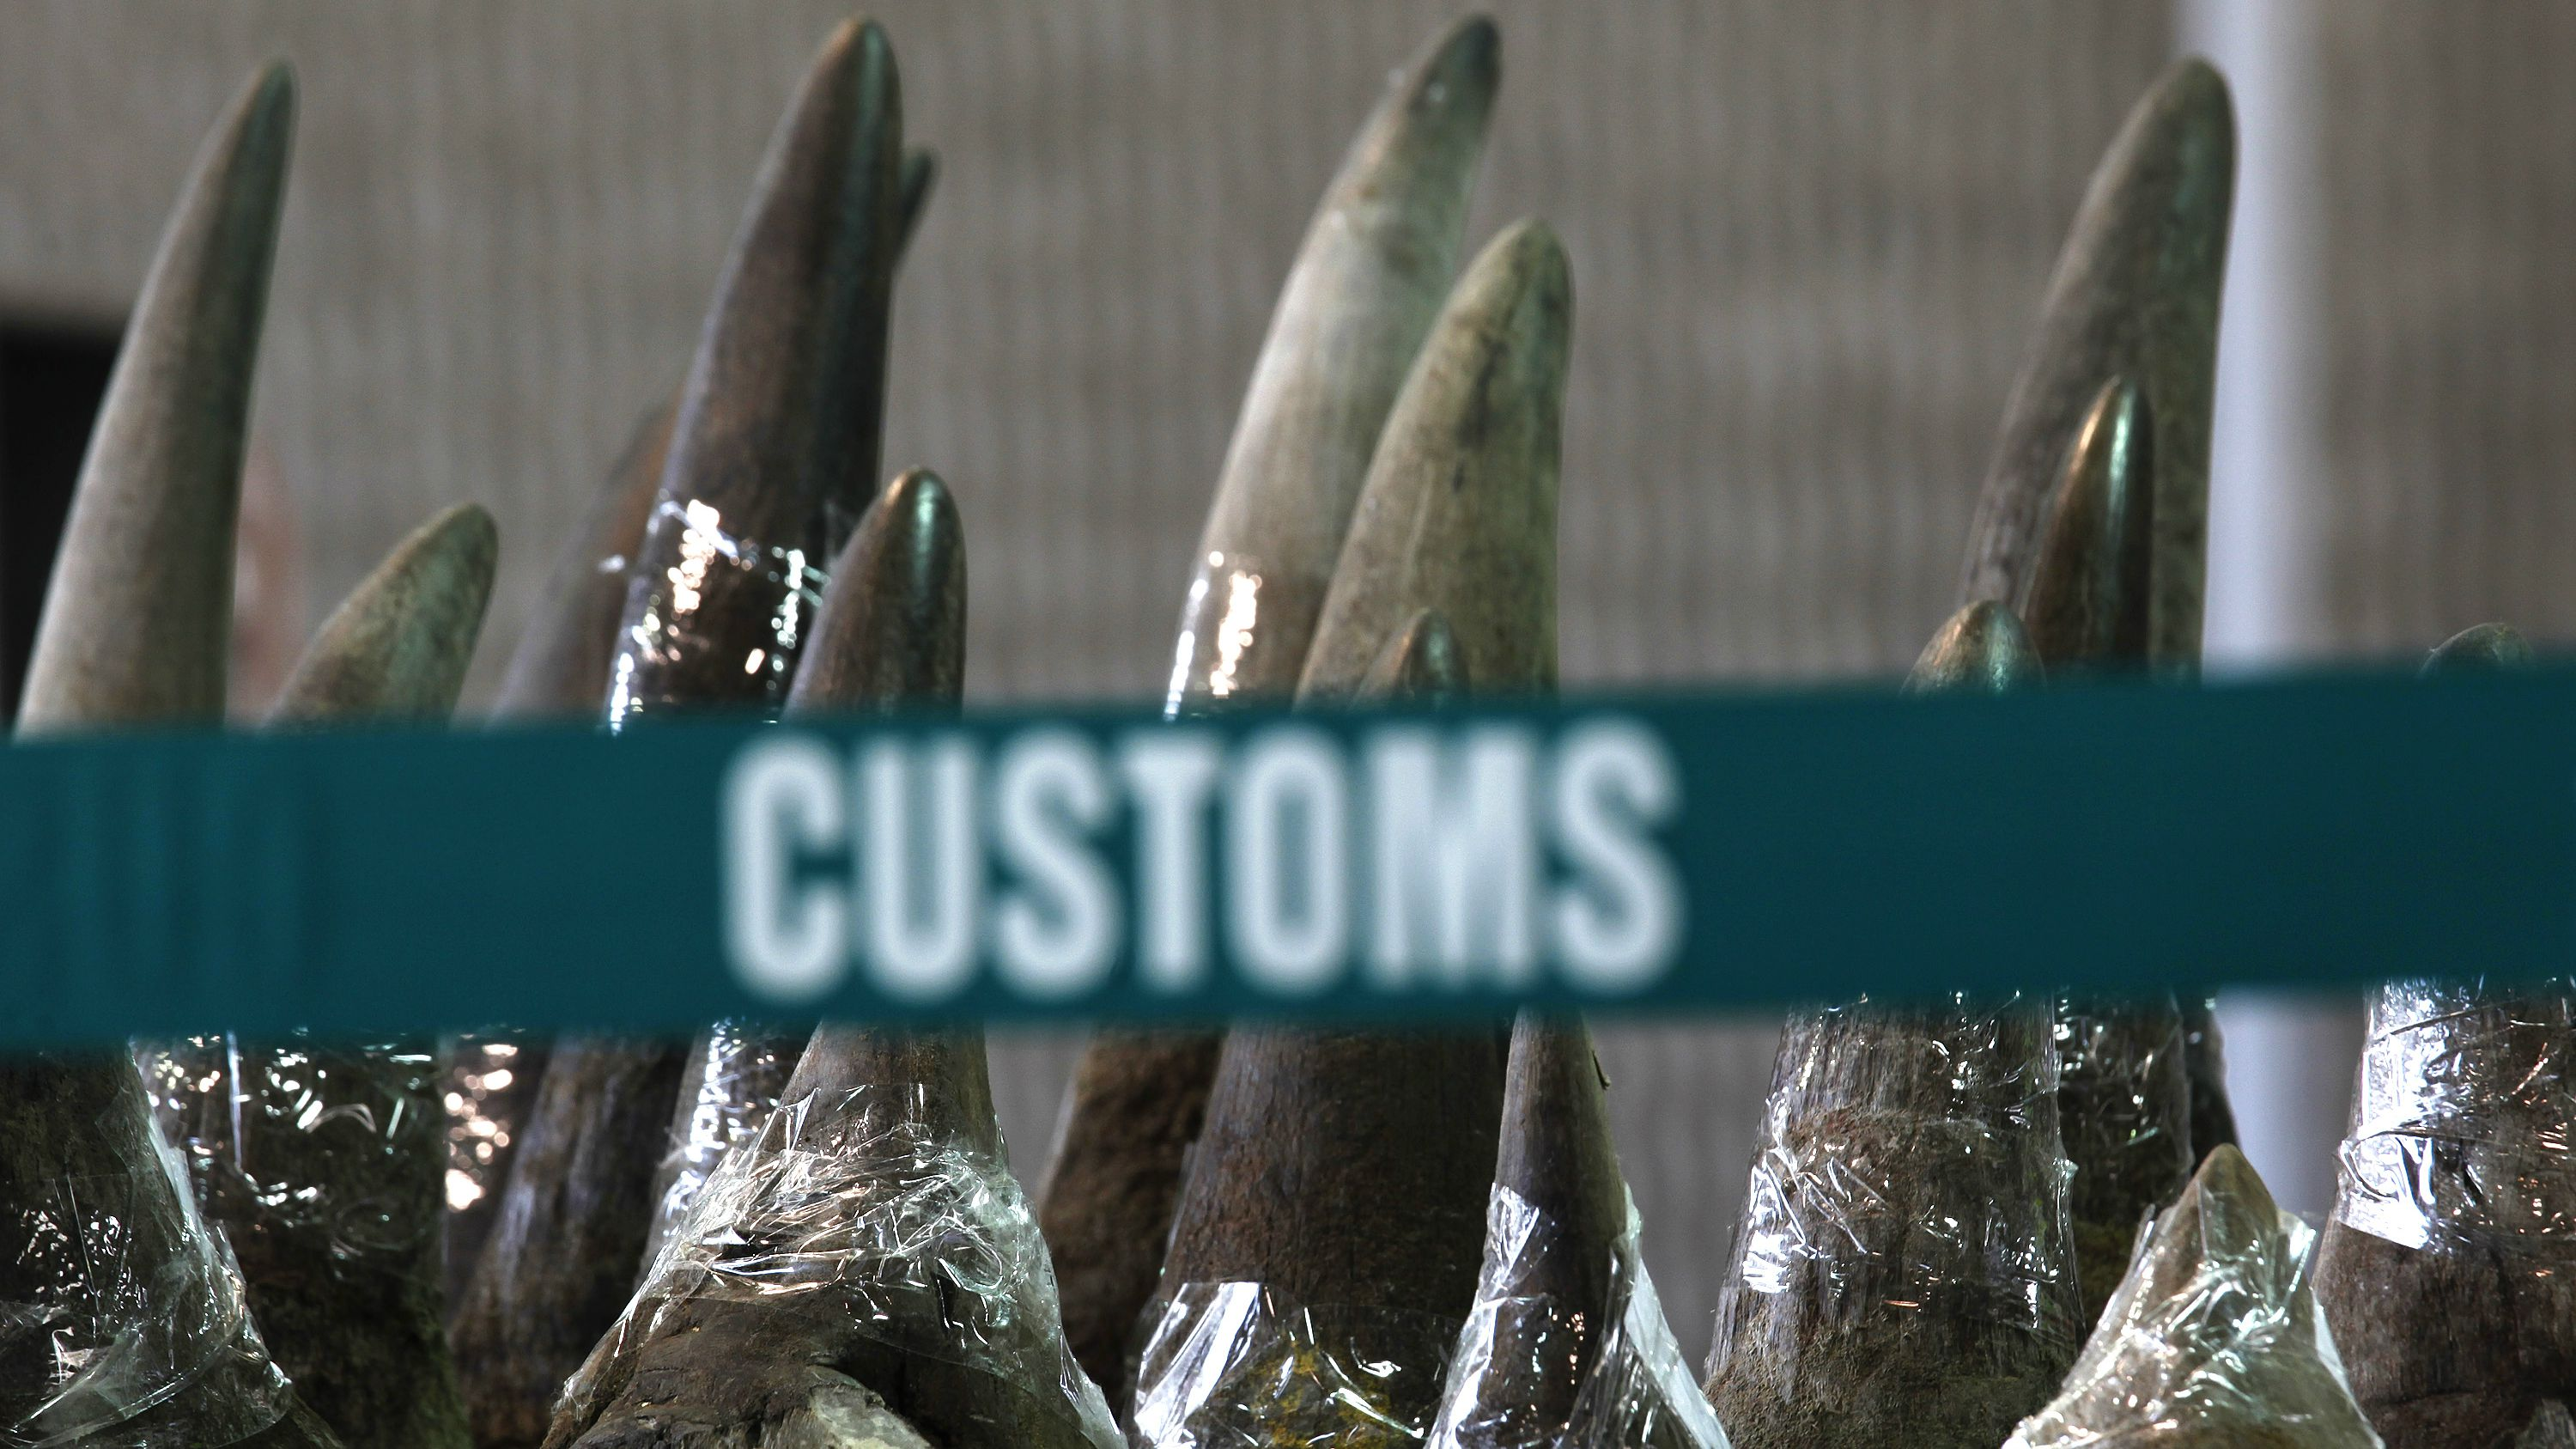 Part of a shipment of 33 rhino horns seized by Hong Kong Customs and Excise Department is displayed during a news conference in Hong Kong November 15, 2011. Hong Kong Customs seized on Tuesday a total of 33 rhino horns, 758 ivory chopsticks and 127 ivory bracelets, worth about HK$17.4 million ($2.23 million), inside a container shipped from Cape Town, South Africa, according the a customs press release. REUTERS/Bobby Yip